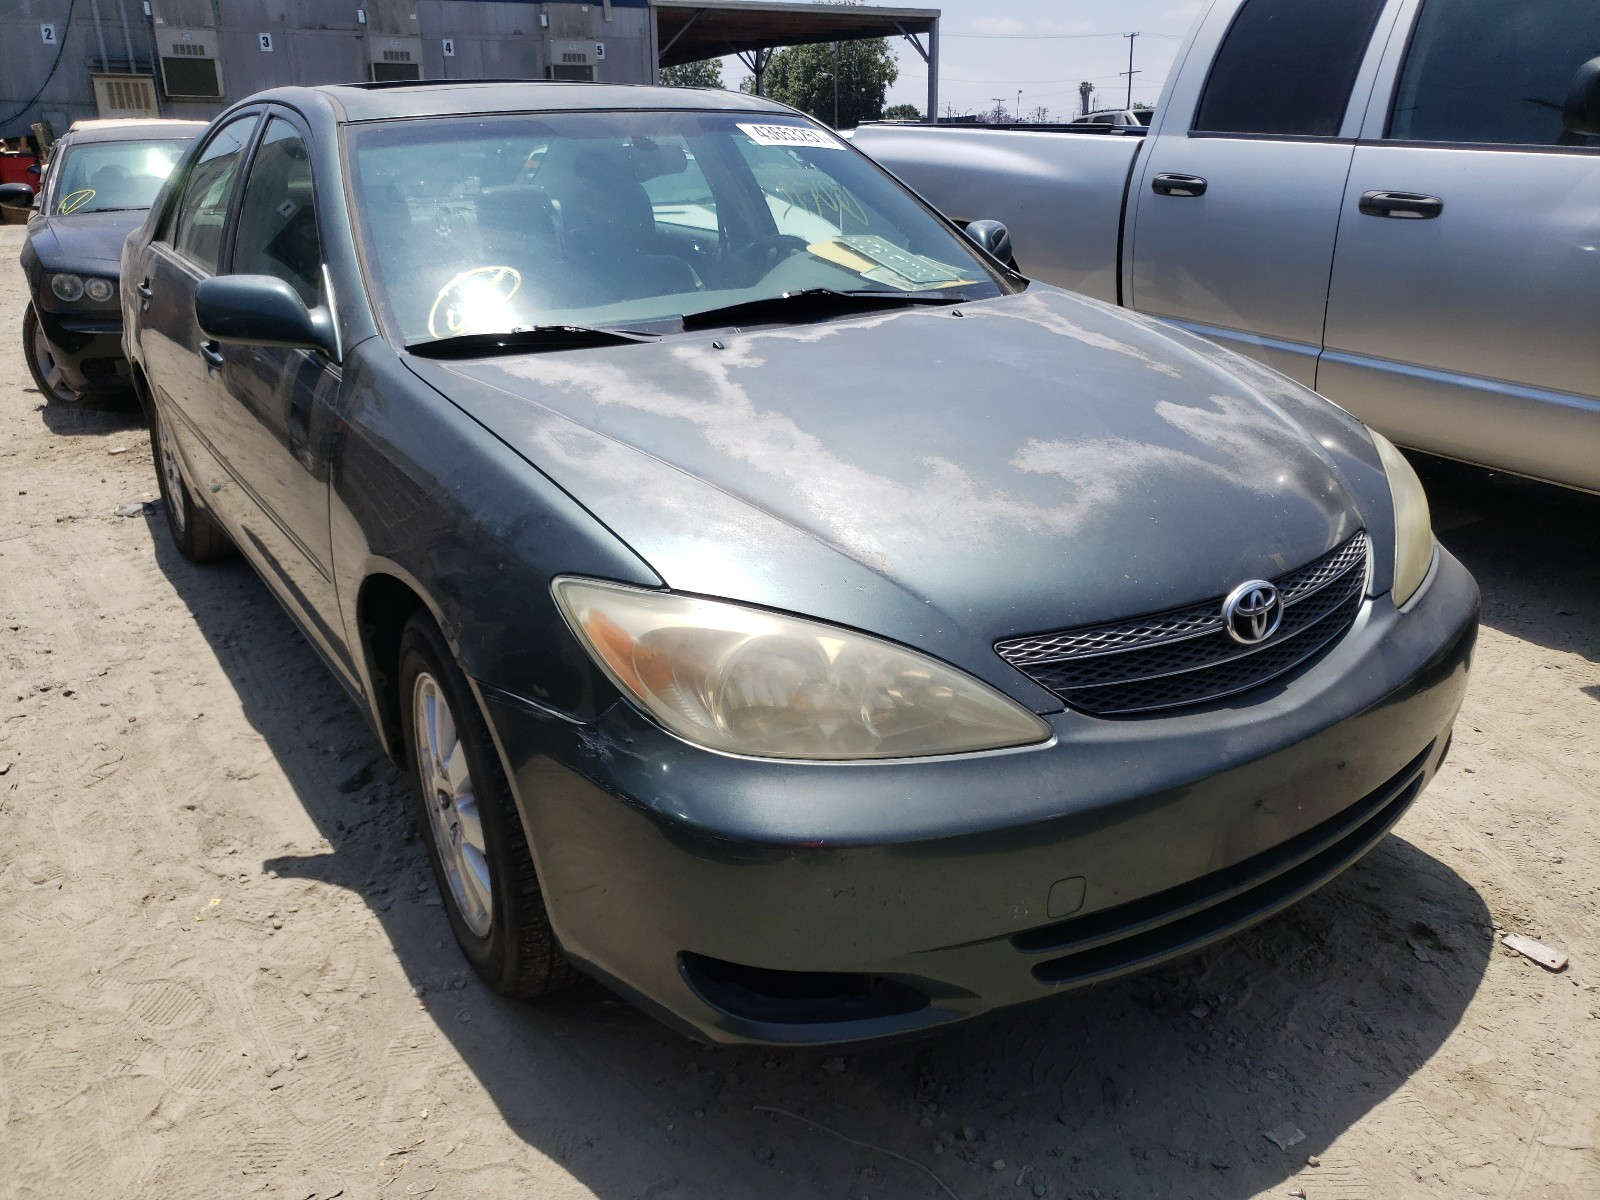 2002 TOYOTA CAMRY LE - JTDBE30K220043254